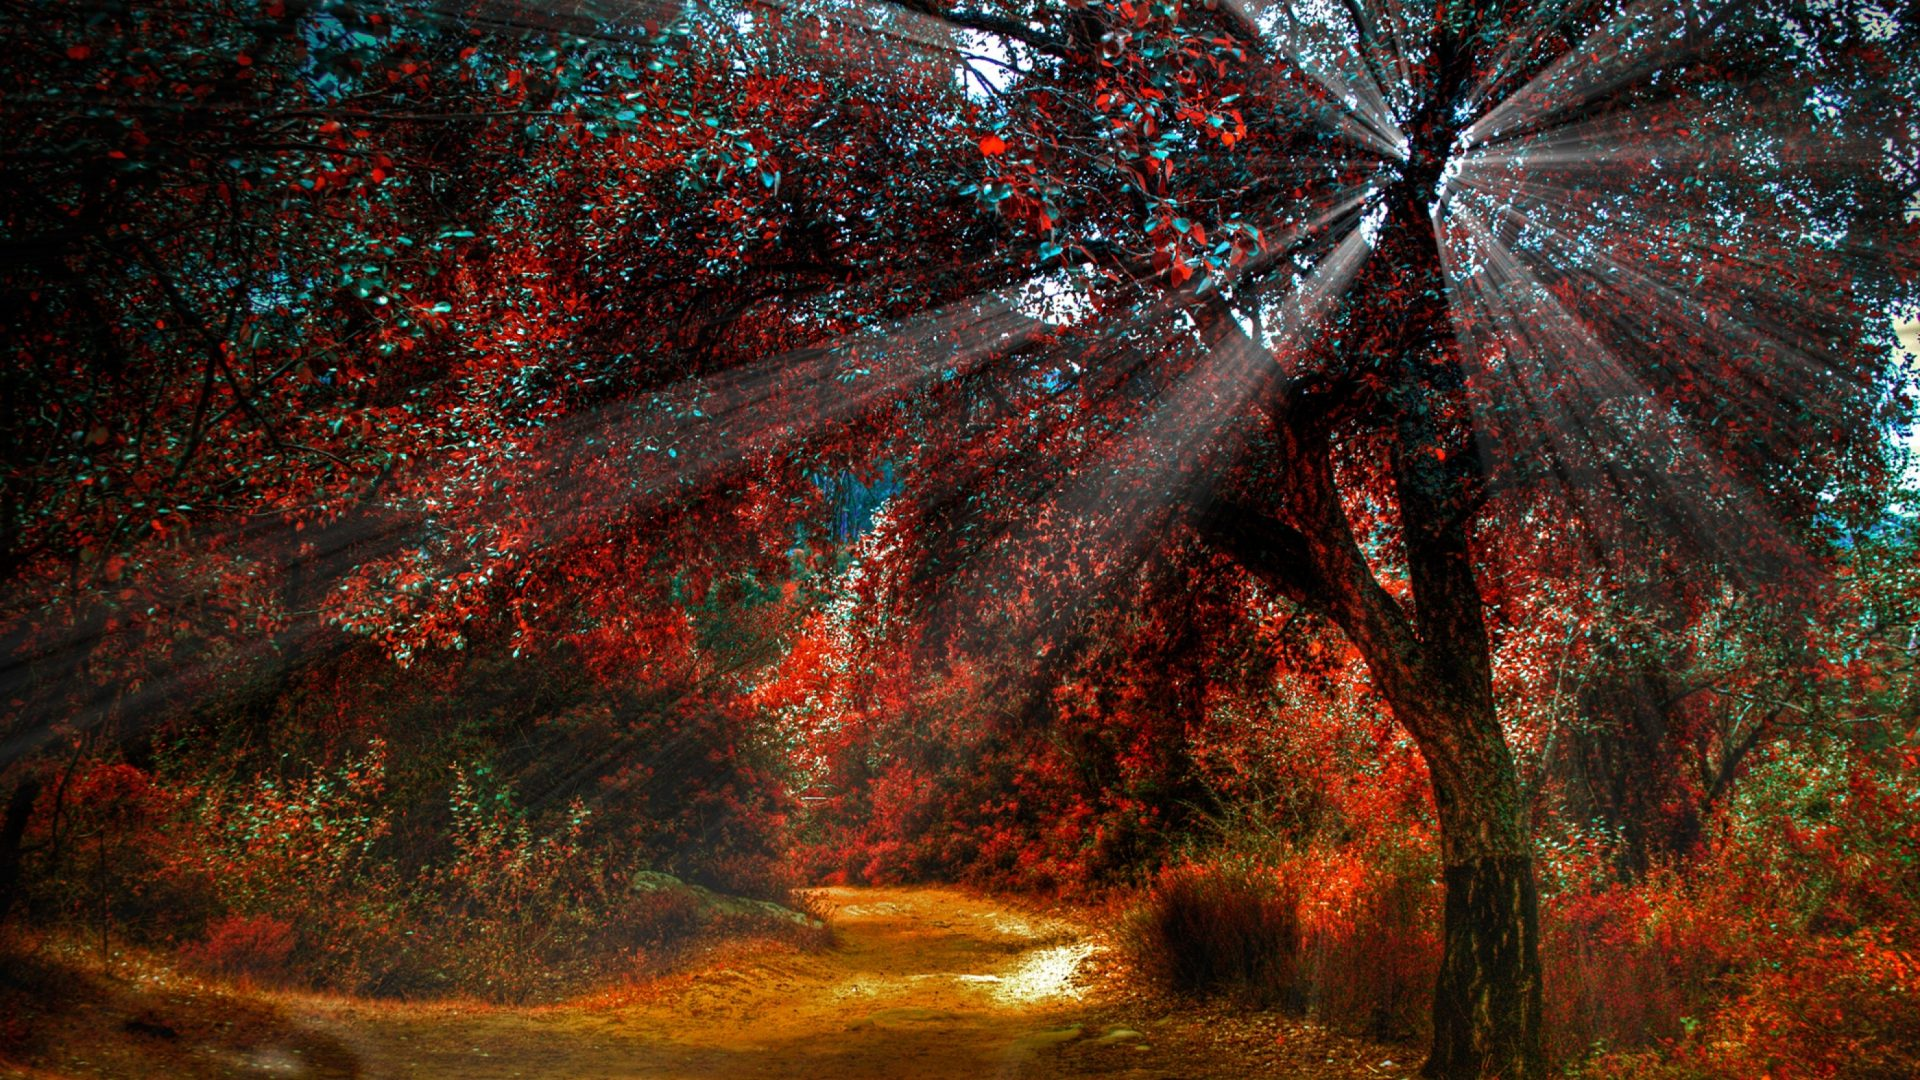 Drawn scenic amazing scenery Trees Red Colors Scenery Tag